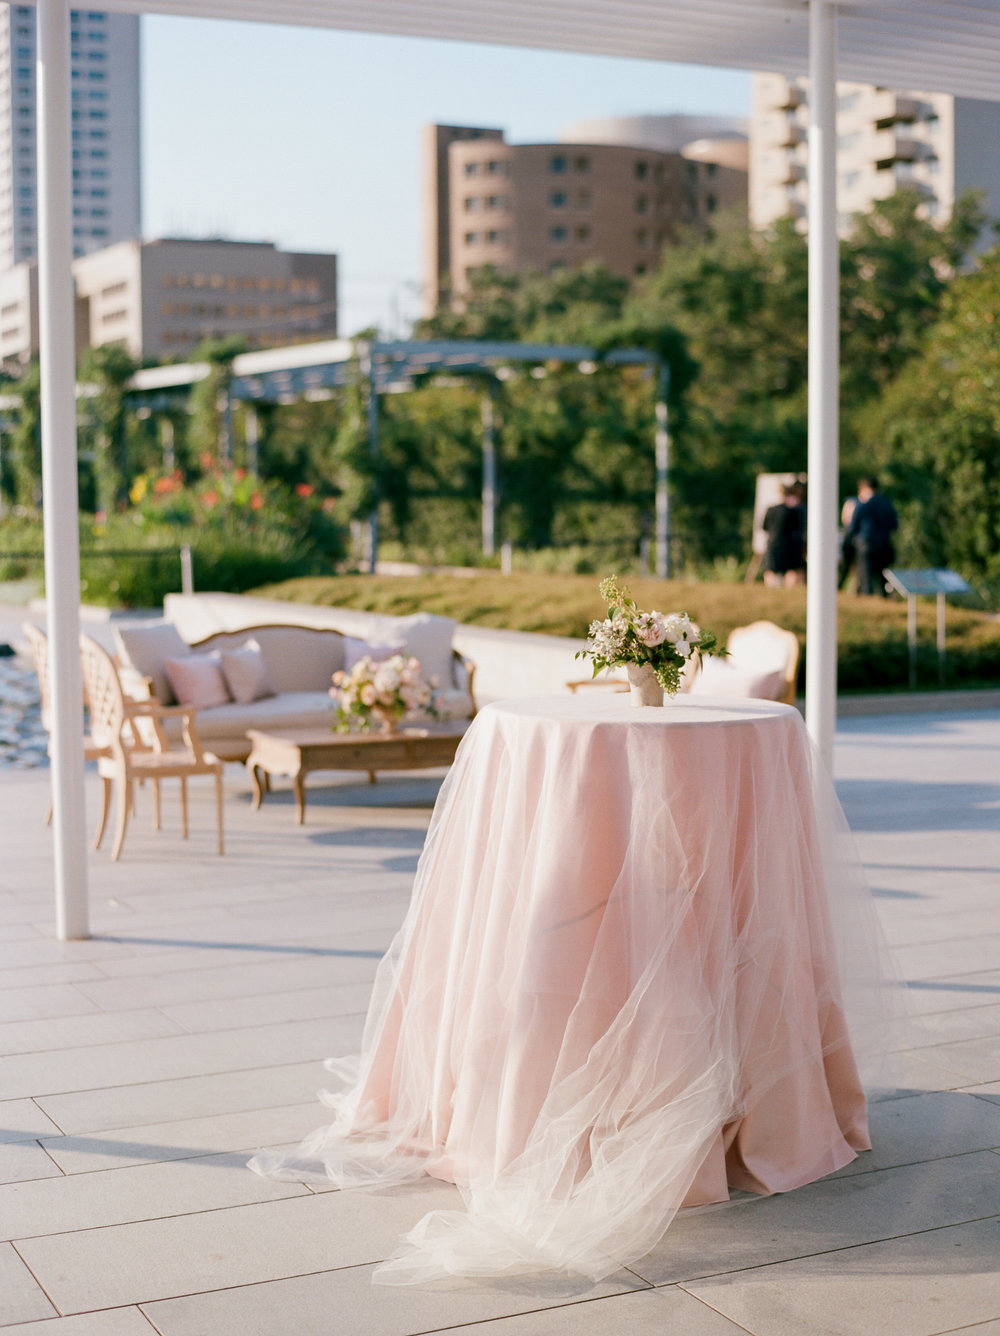 Martha-Stewart-Wedding-Dana-Fernandez-Photography-Josh-Texas-Film-Houston-Wedding-Fine-Art-Photographer-McGovern-Centennial-Gardens-Top-Best-81.jpg